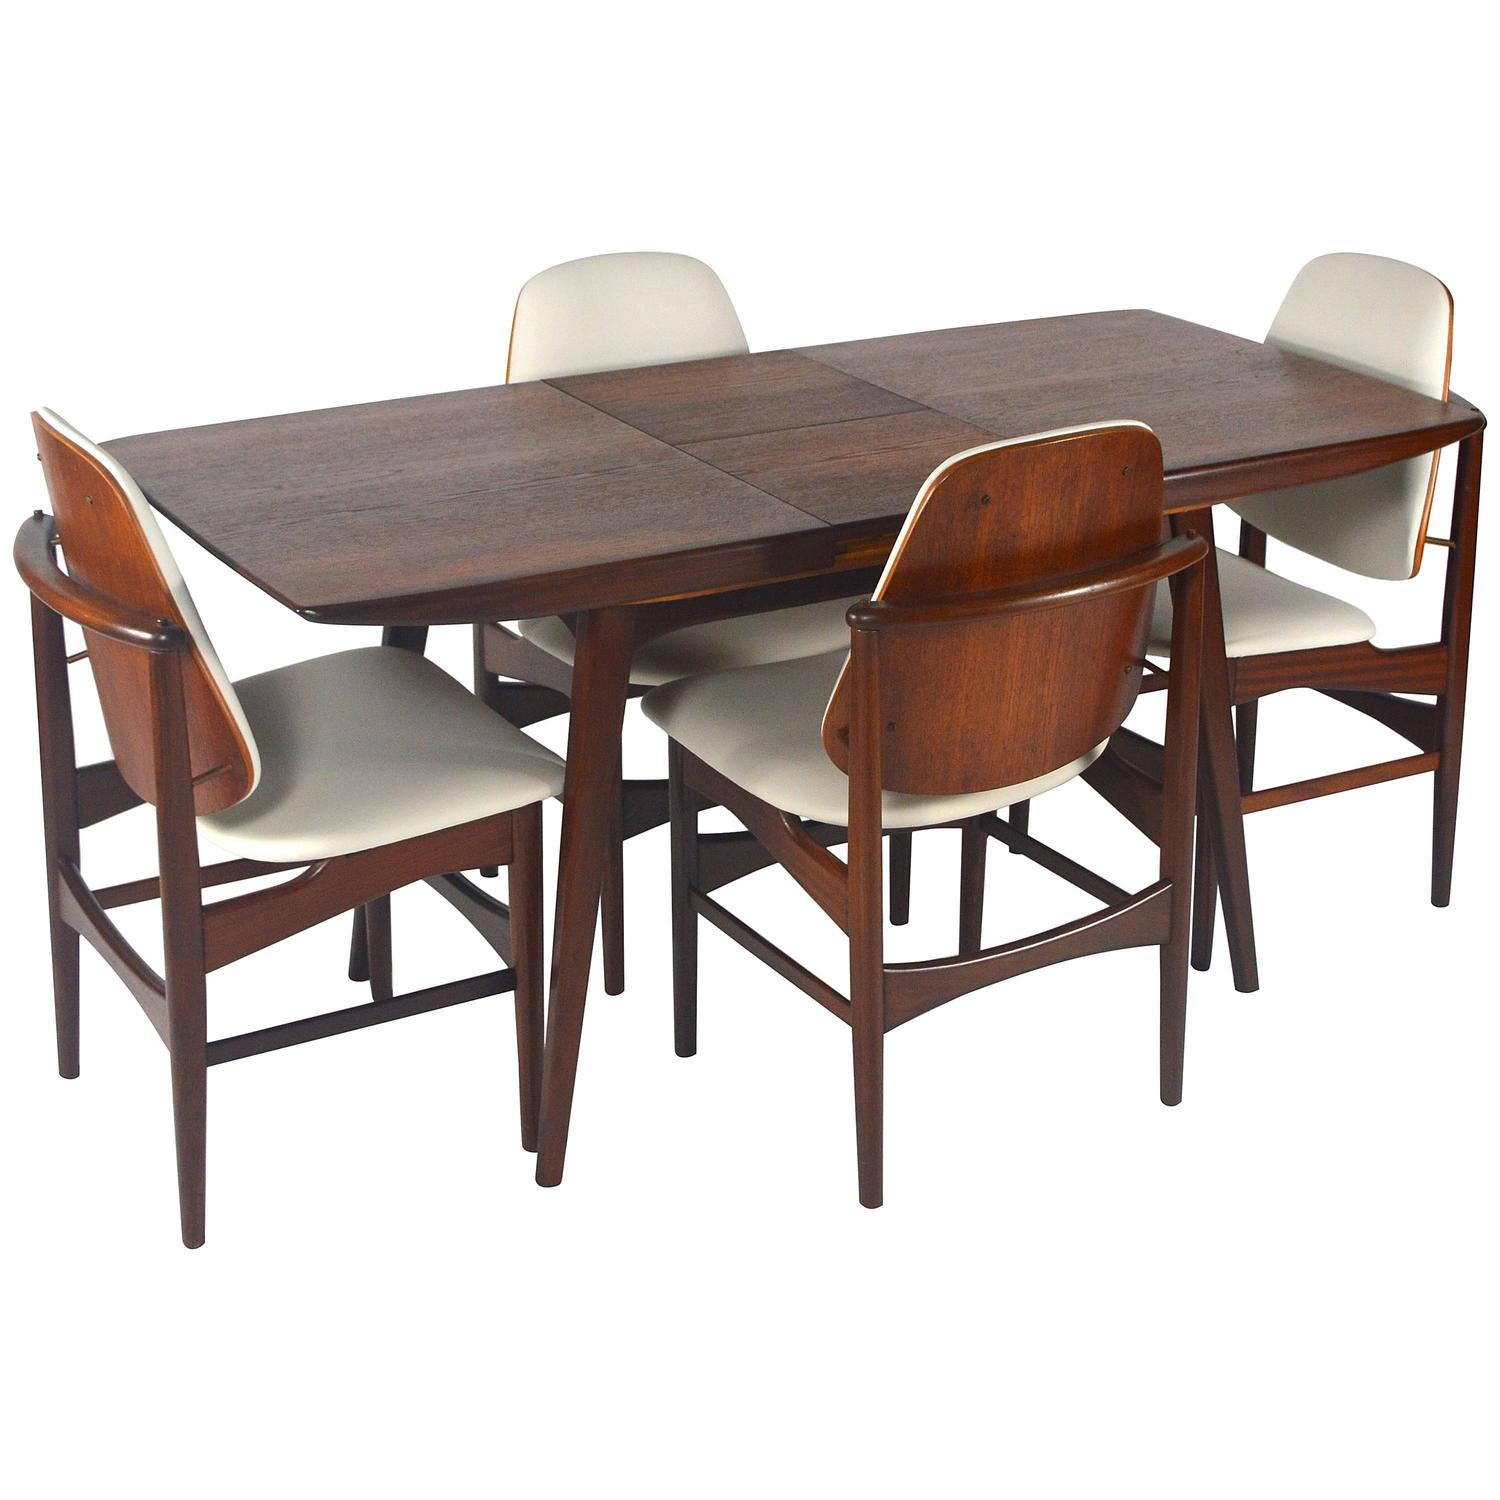 elegant teak dining set by louis van teeffelen for webe